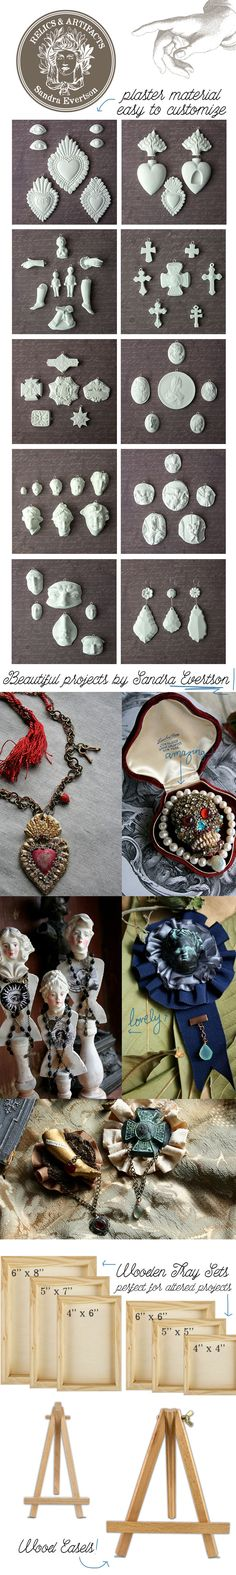 "I added ""Prima Relics/Artifacts"" to an #inlinkz linkup!http://prima.typepad.com/prima/2015/01/introducing-relics-artifacts.html"